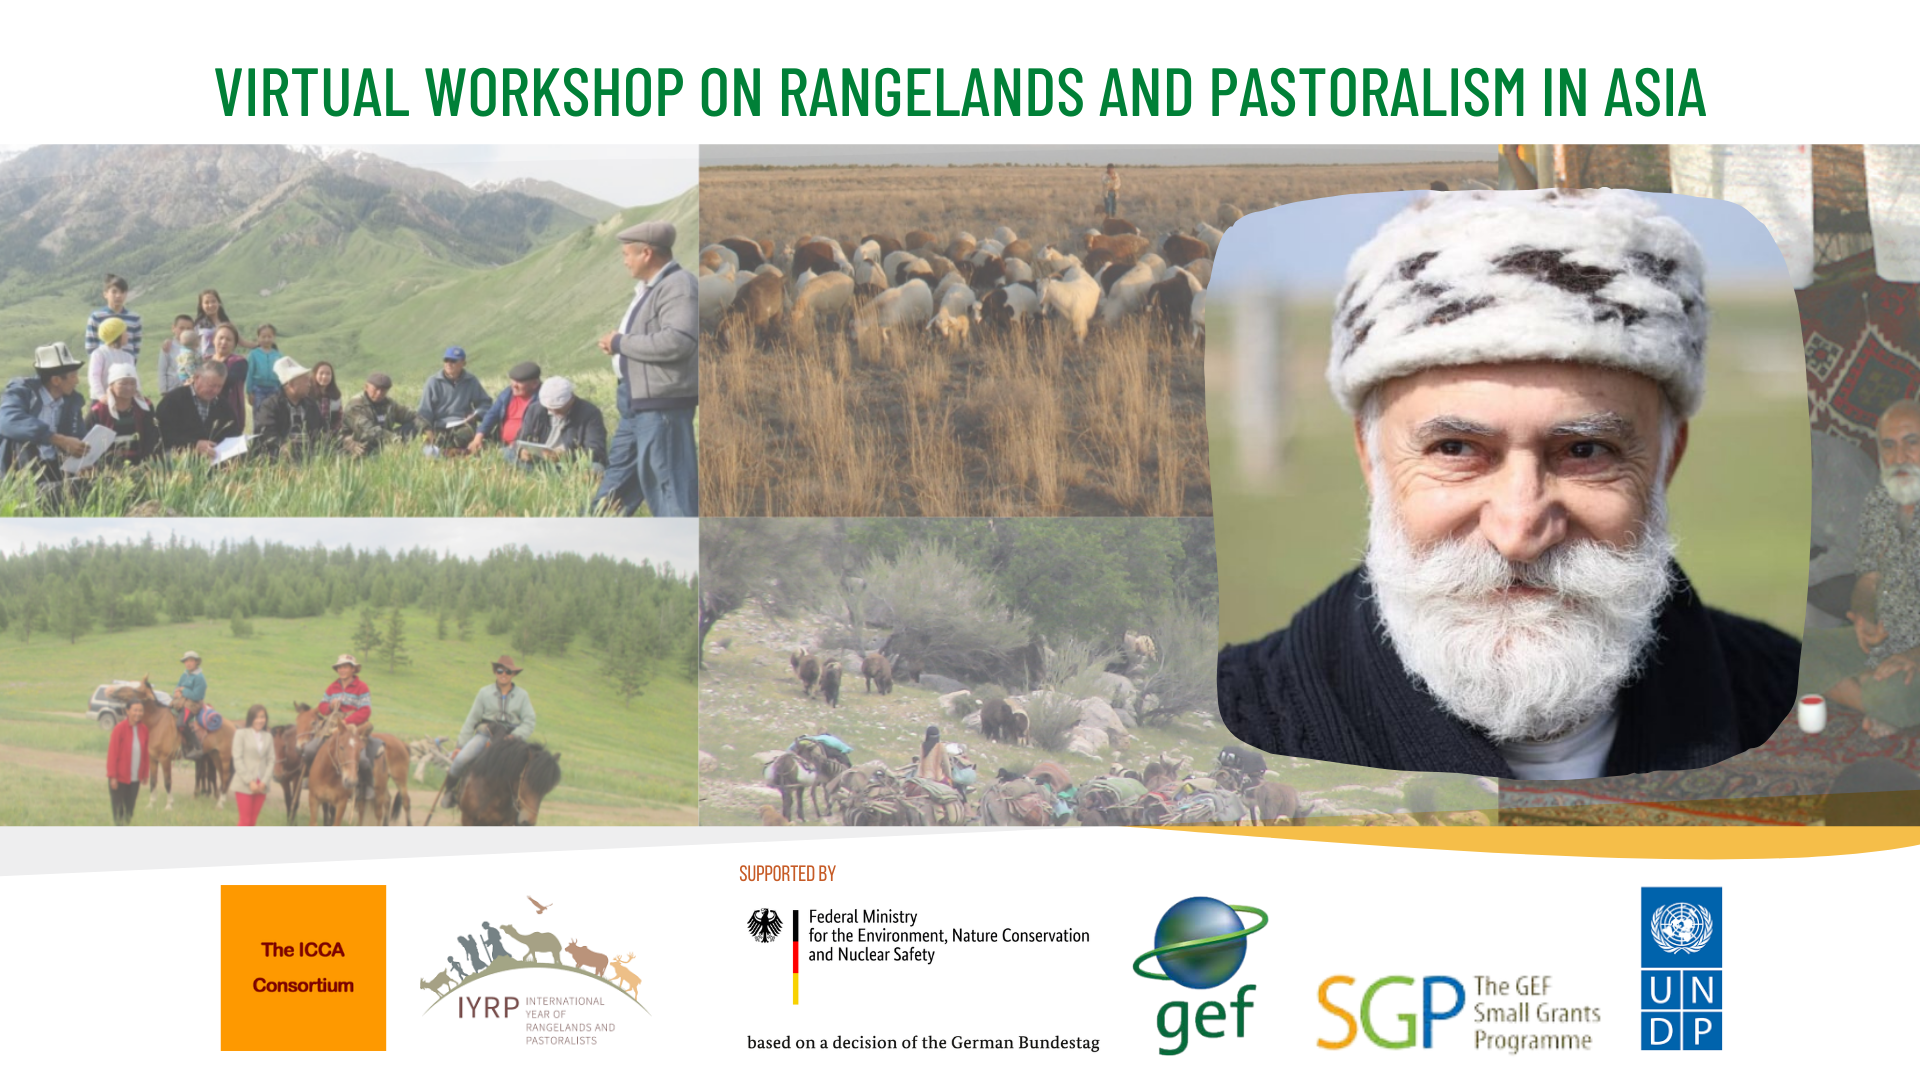 Pastoral communities' territories of life in Asia: Tales of coexistence